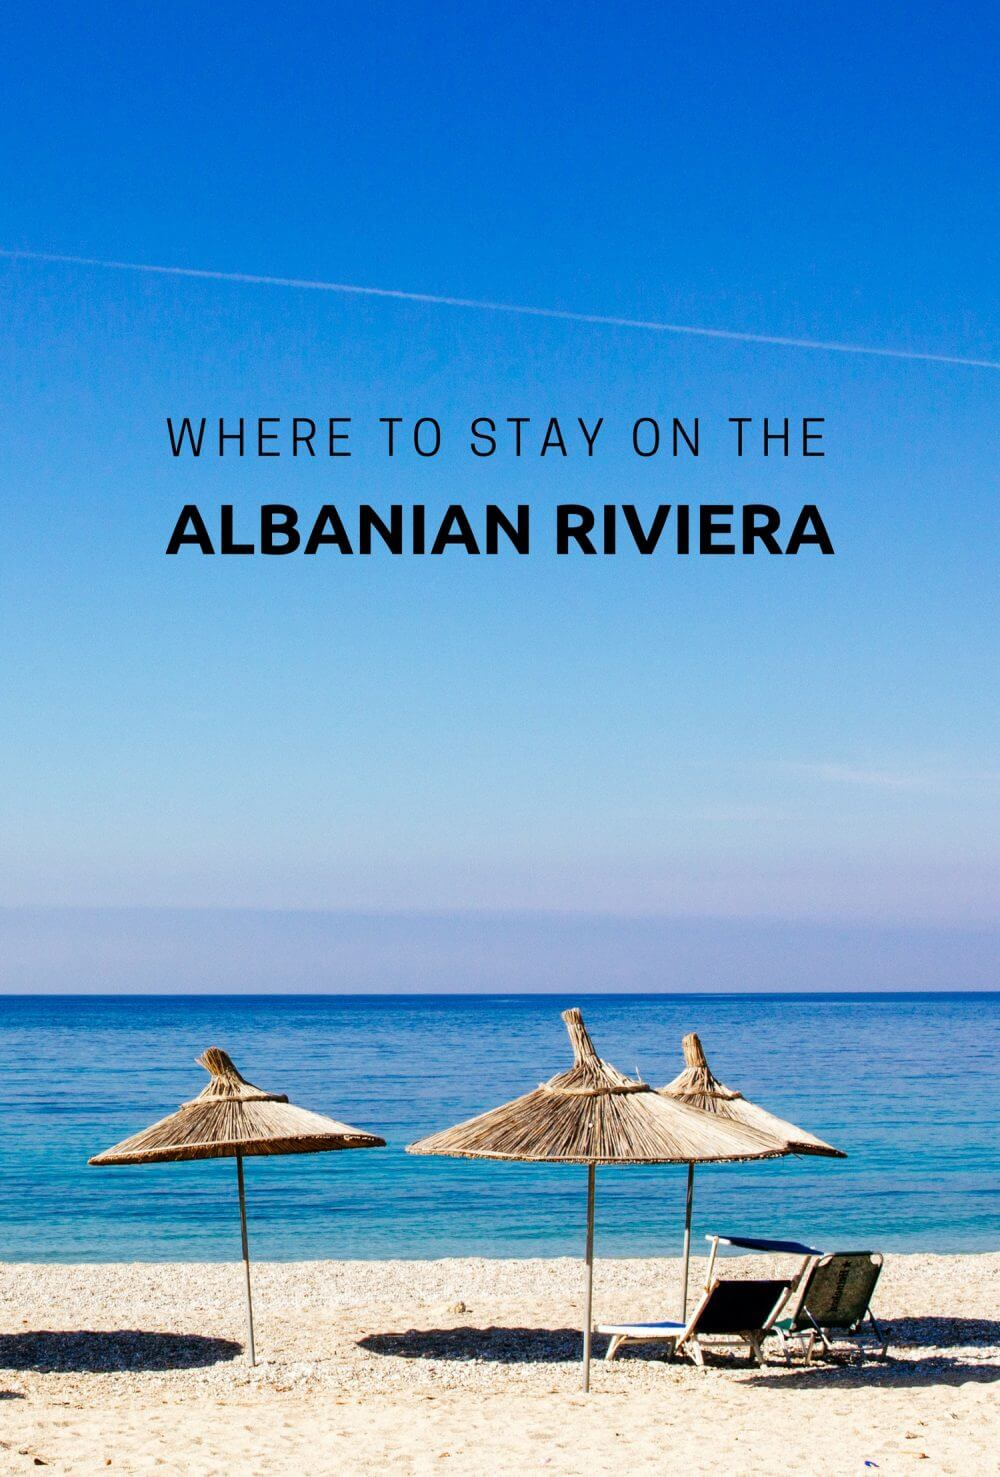 Where to Stay on the Albanian Riviera